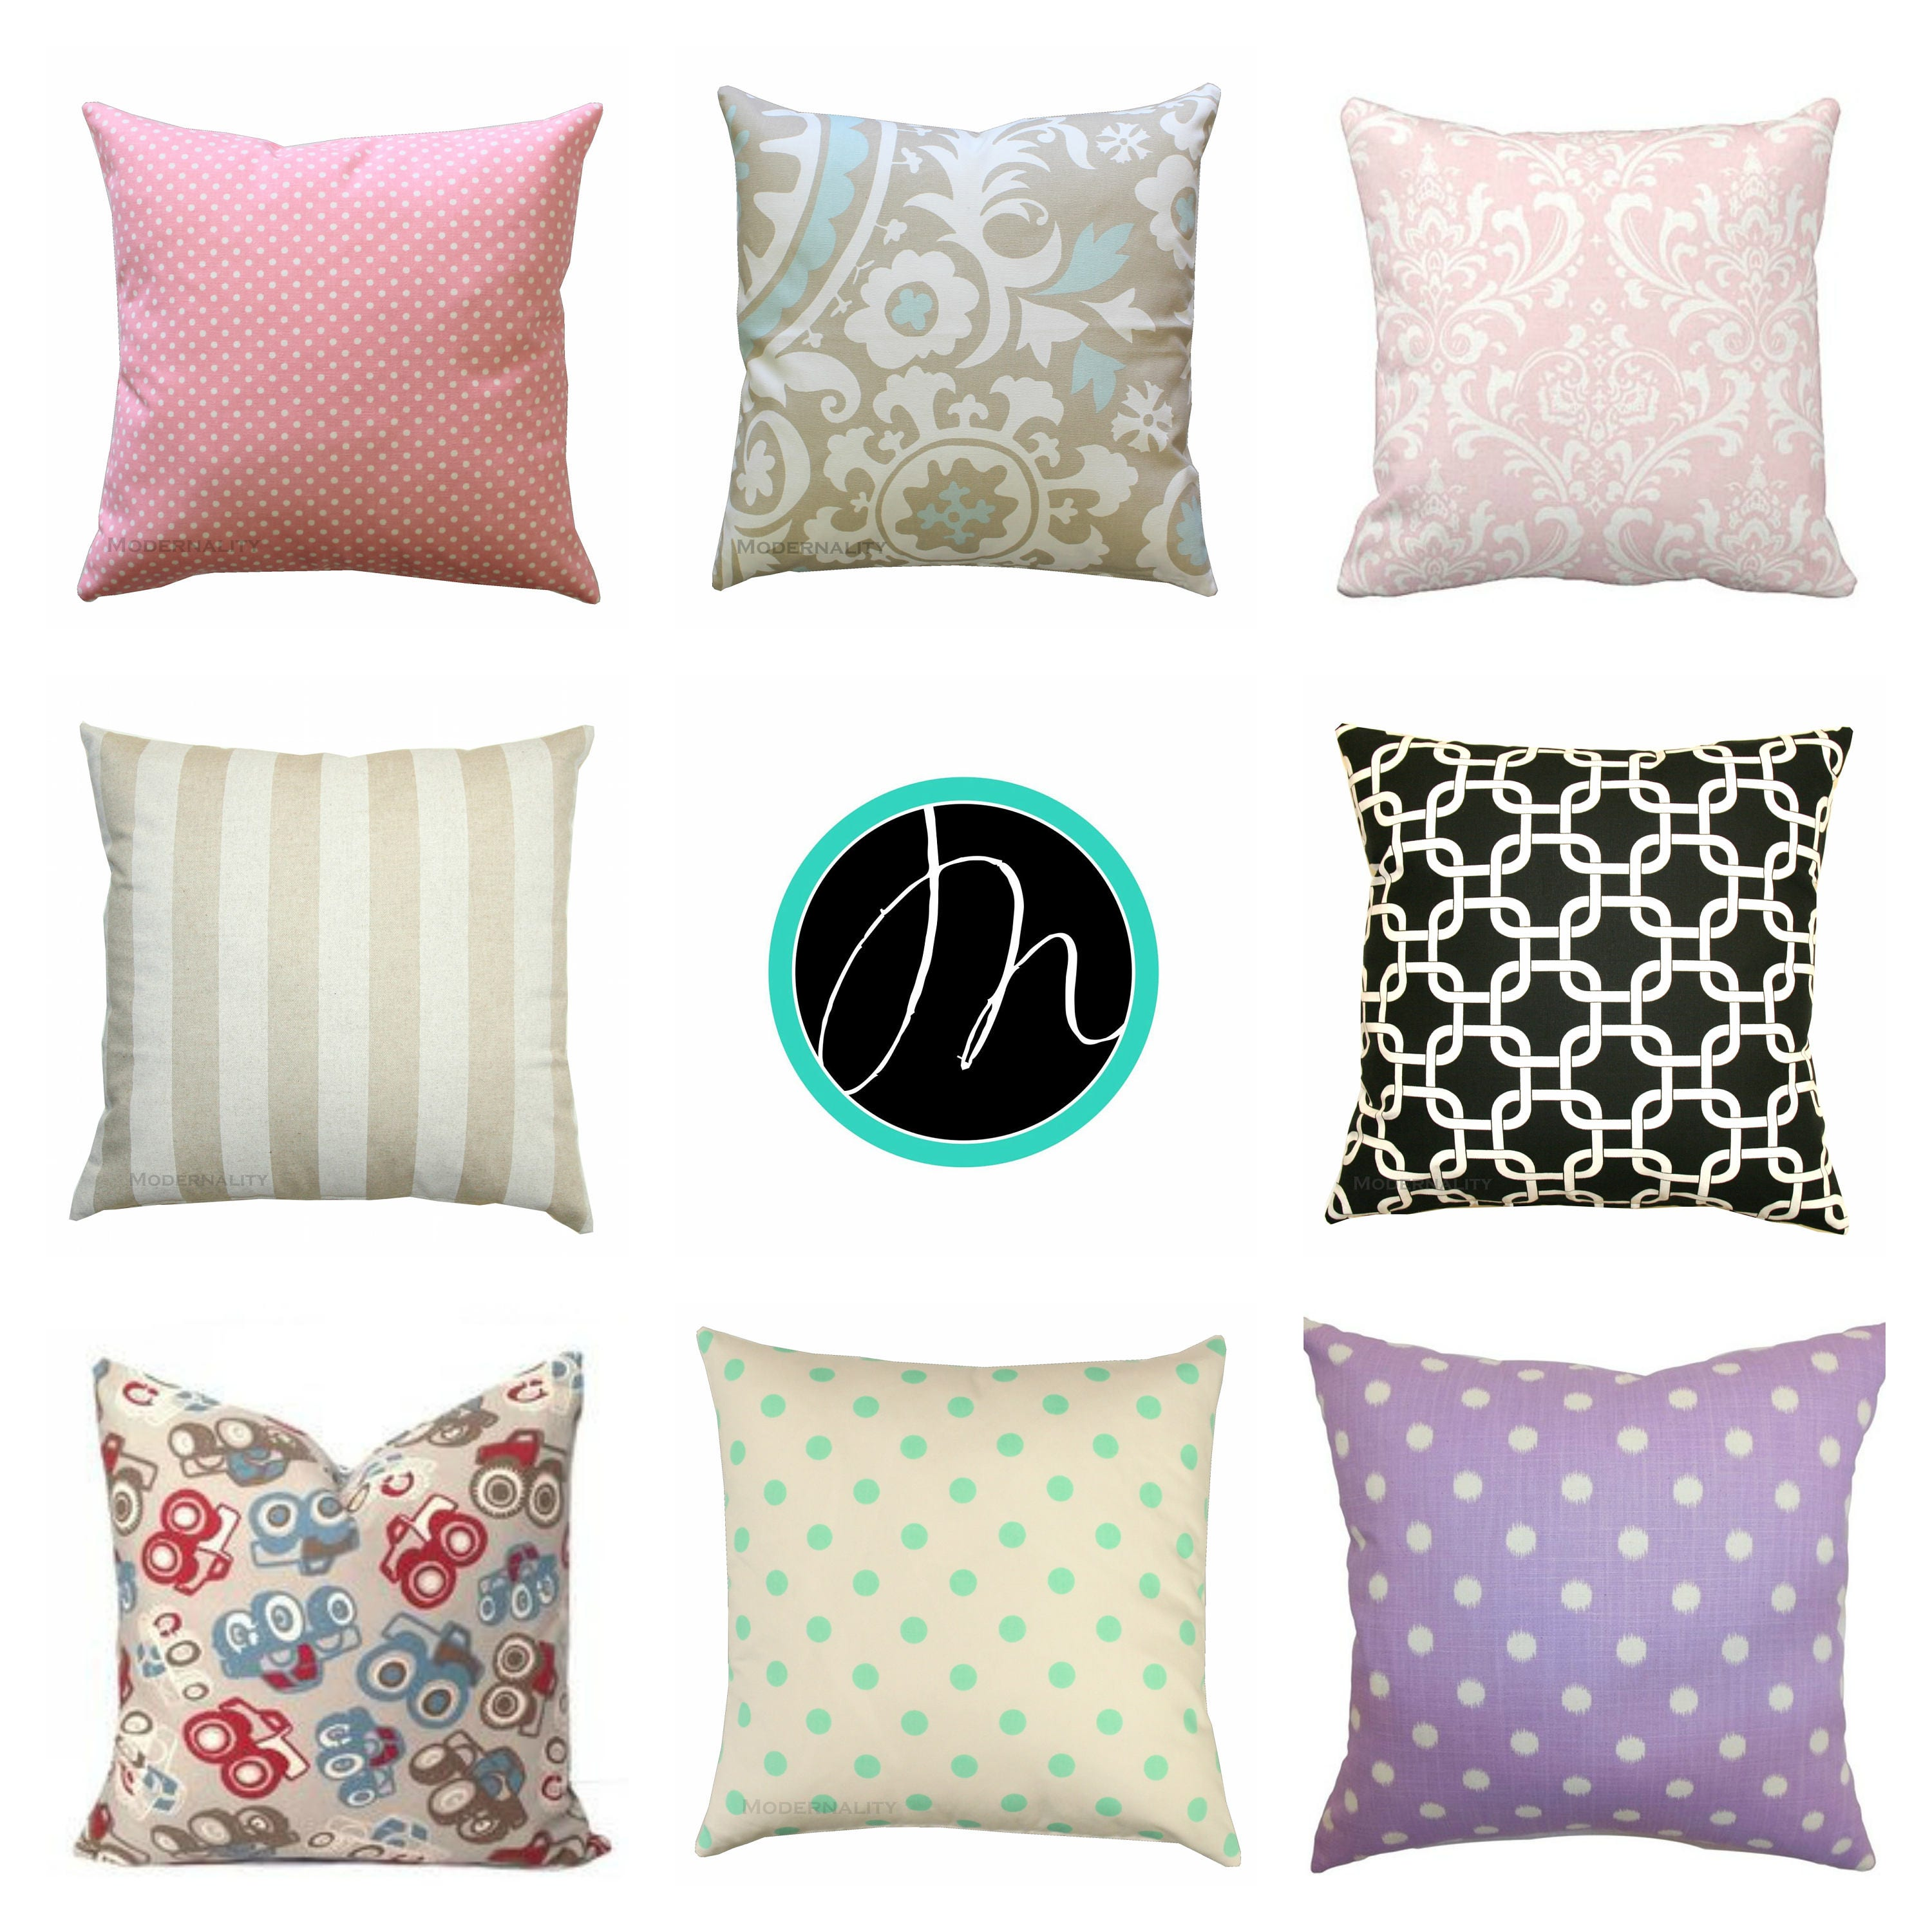 CLEARANCE Throw Pillows Decorative Pillow Cover Toss Pillow